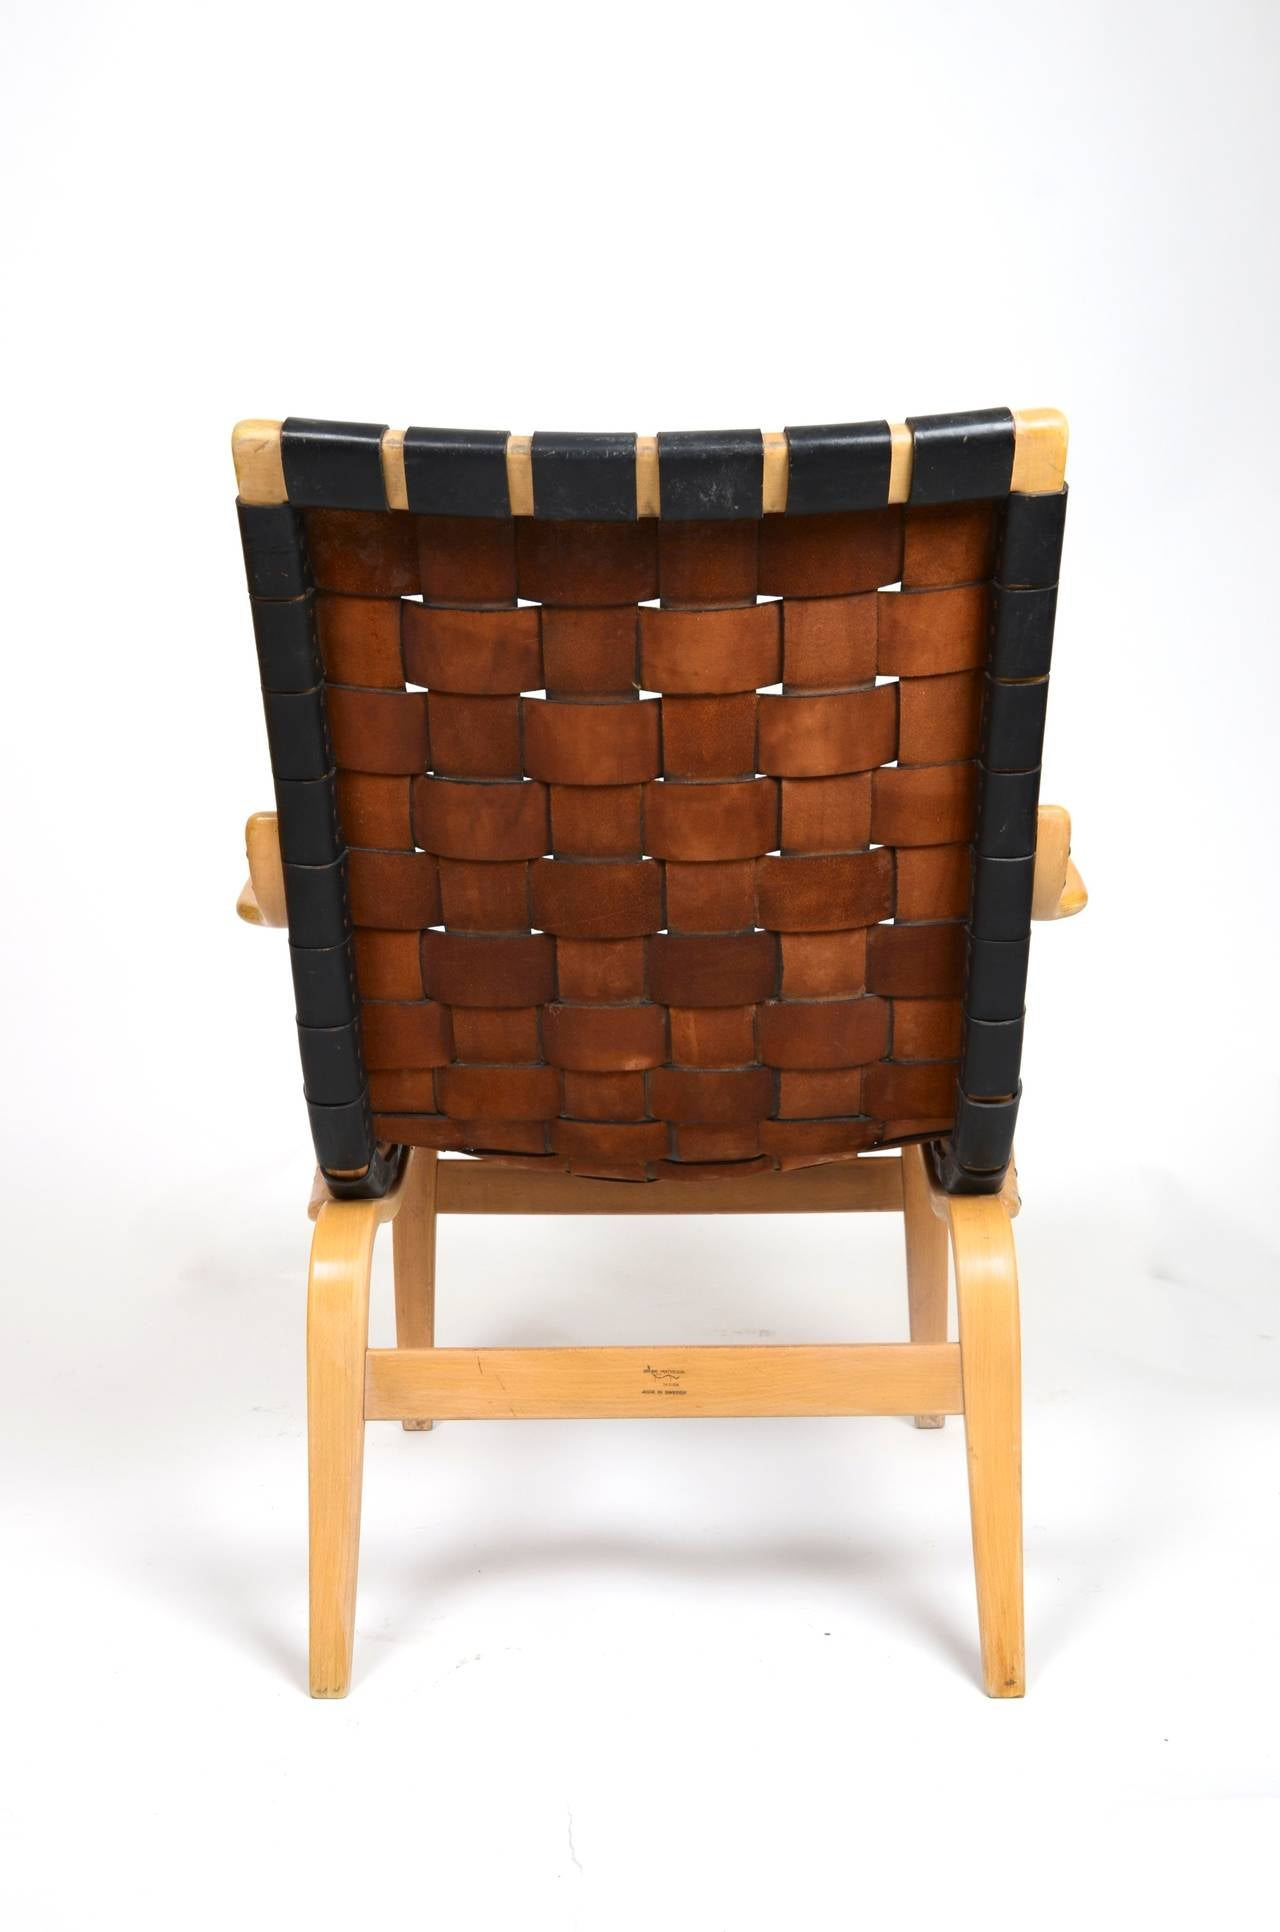 Eva Chair In Leather by Bruno Mathsson for Karl Mathsson, Sweden In Good Condition For Sale In Stockholm, SE